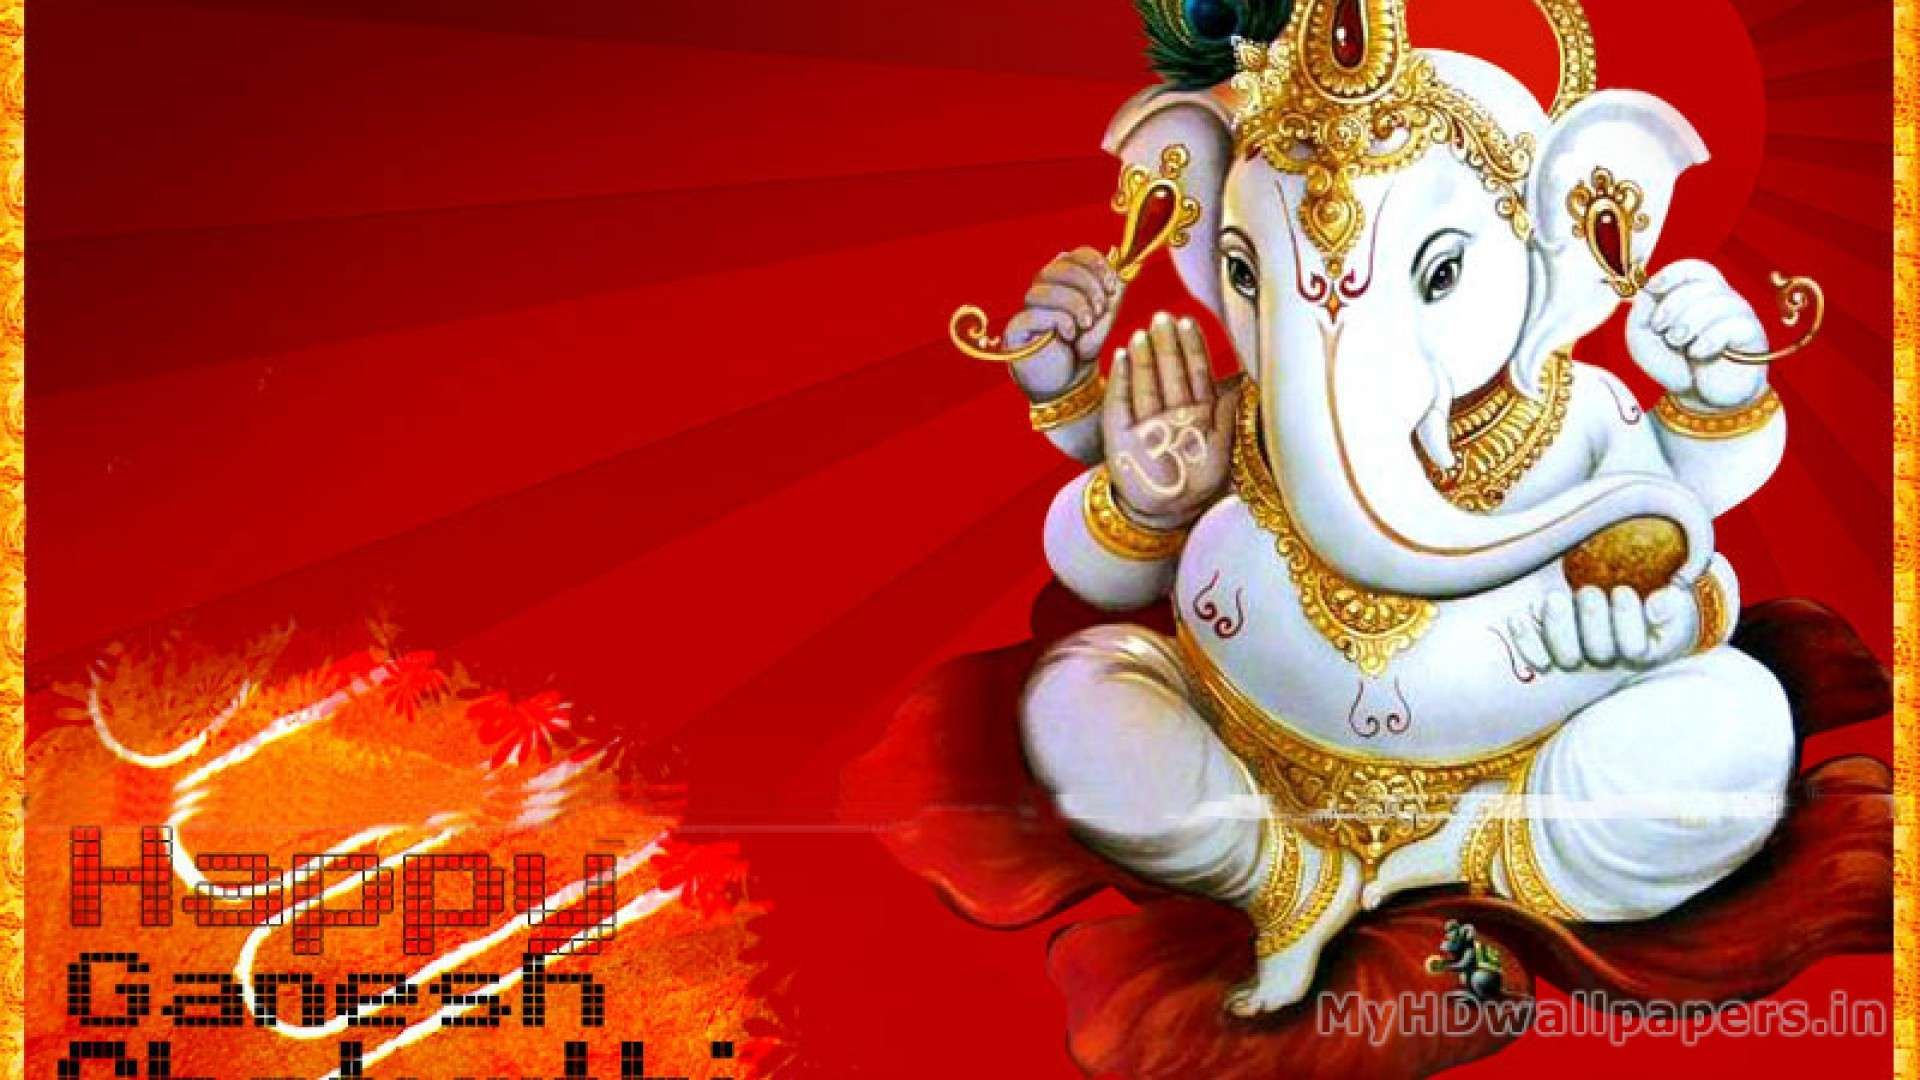 Hd wallpaper quality - Ganesh Wallpaper Hd Quality For Pc Hd Wallpapers